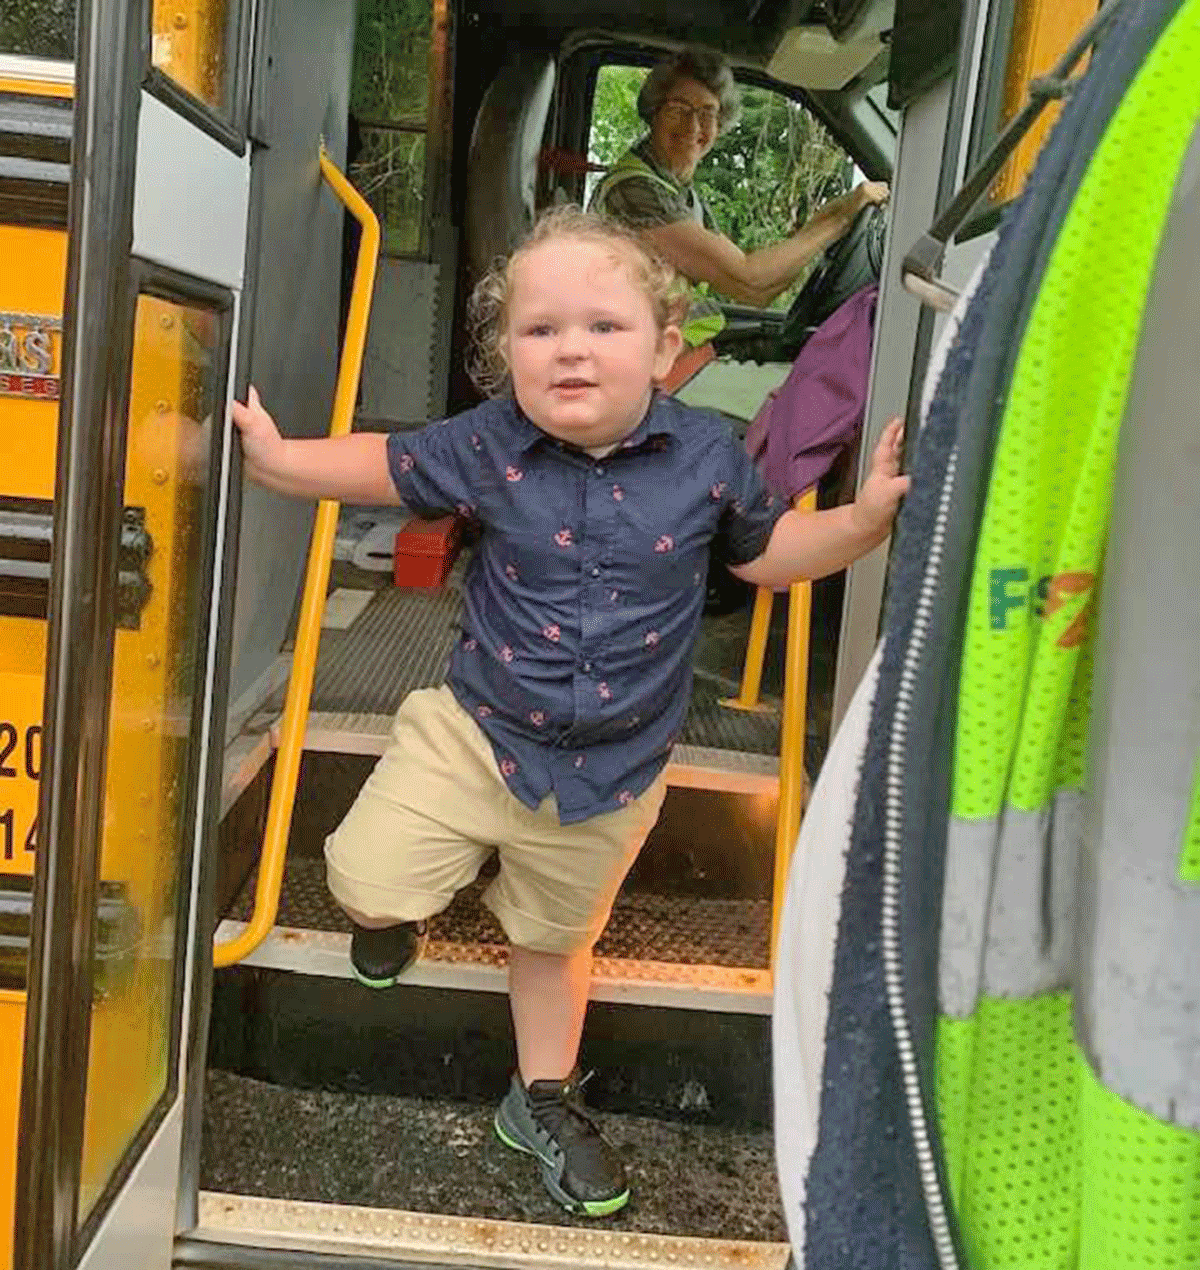 Grayson, age 3, is above getting on the bus for his first day of school in Canton. Photo submitted by his aunt, Chelsea McBain.